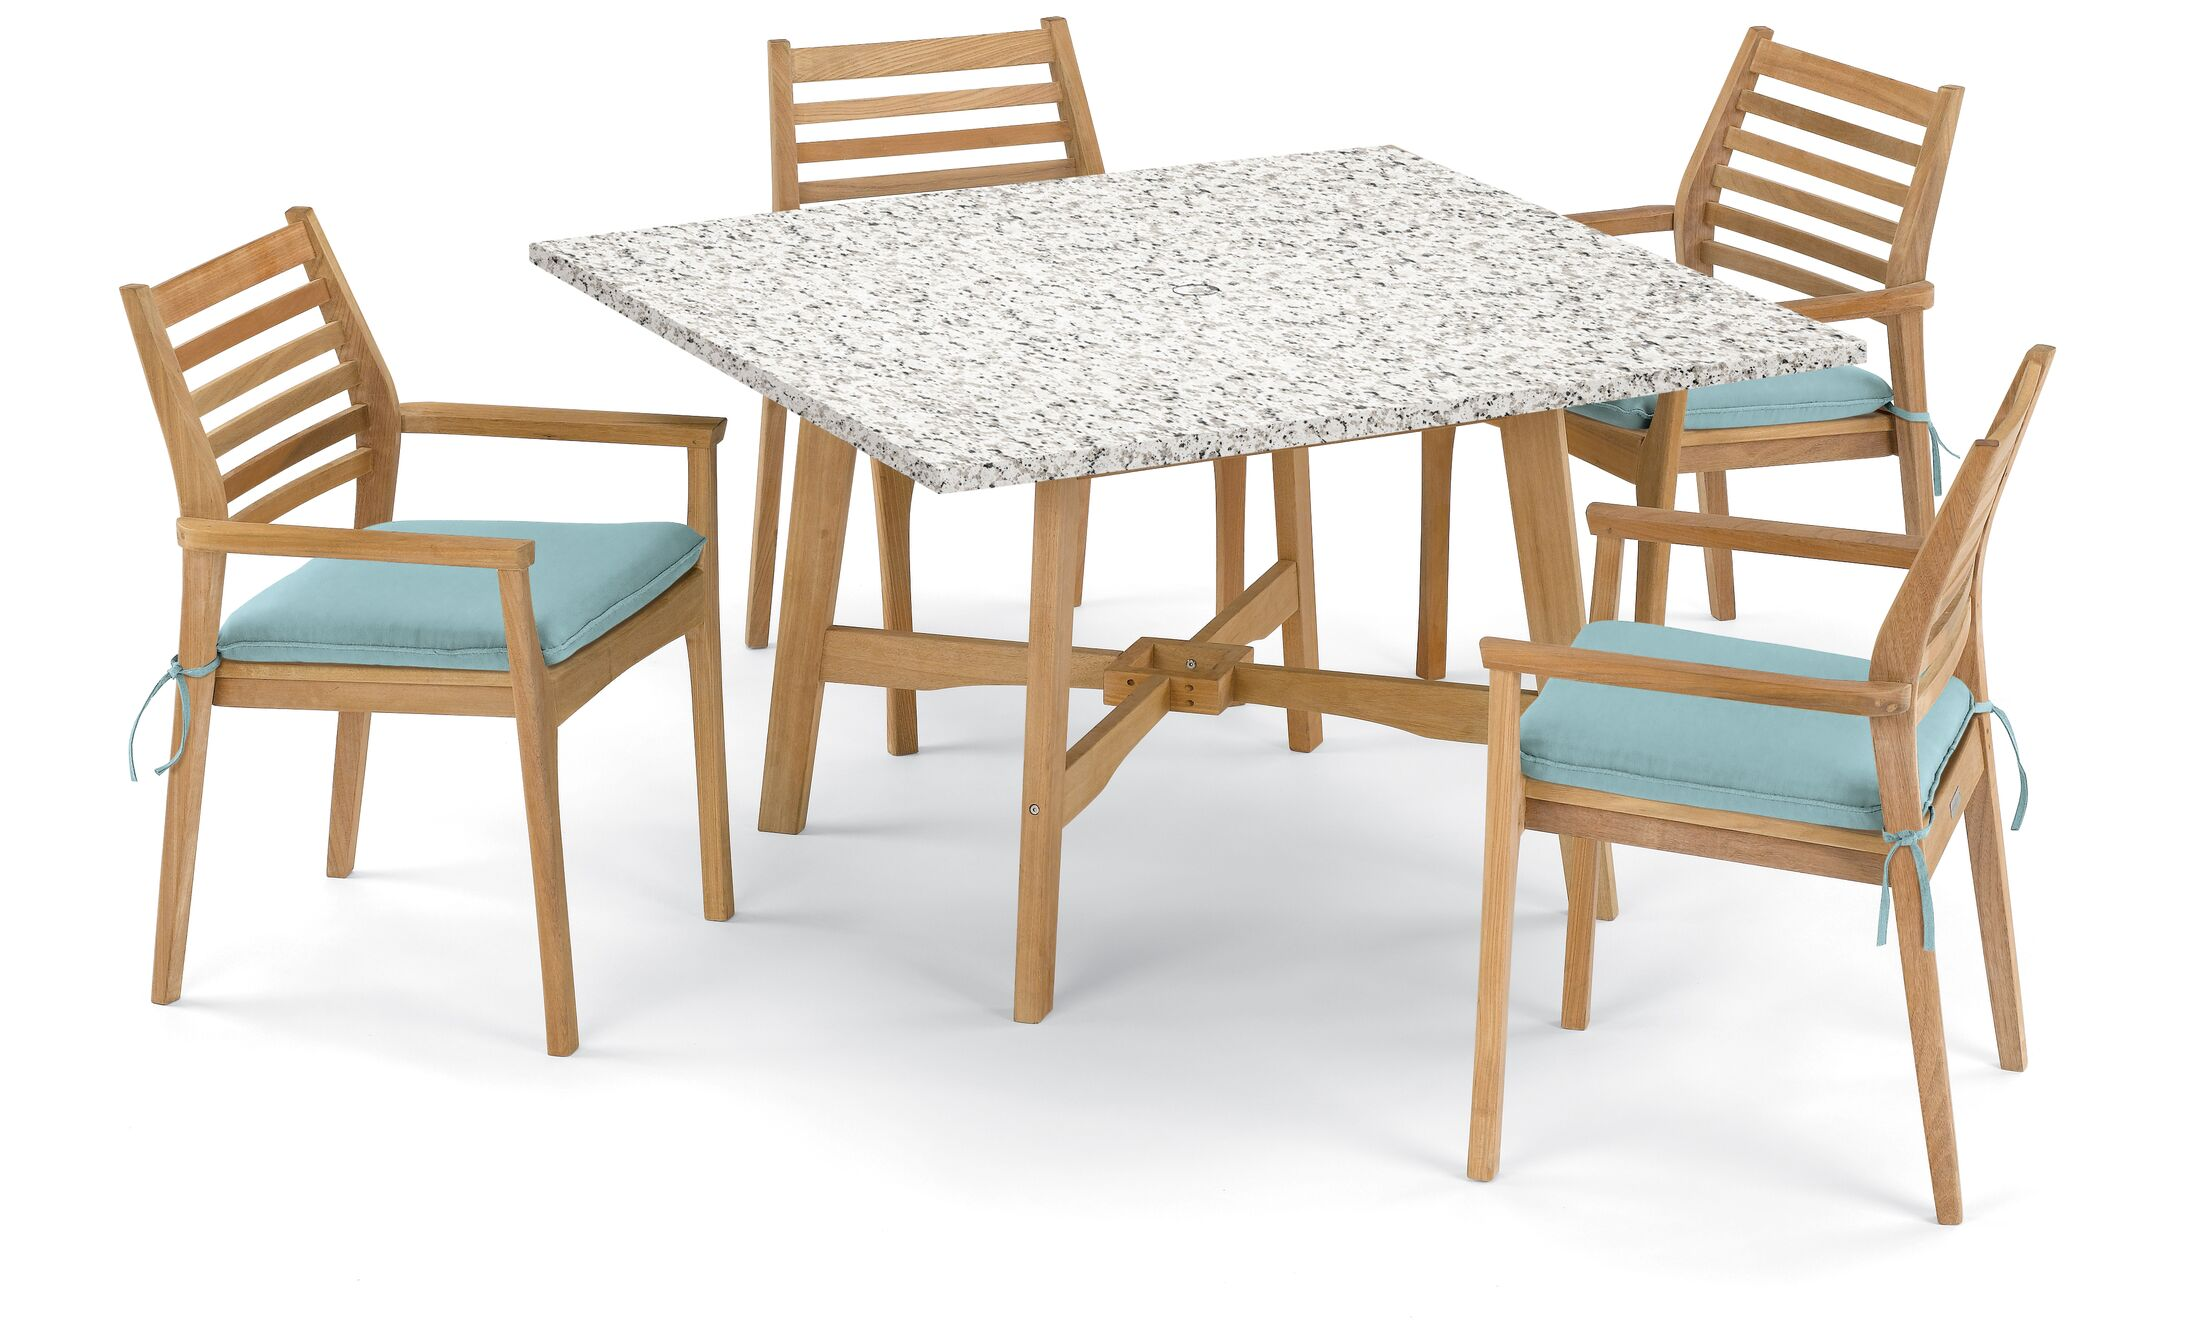 Eichhorn 5 Piece Dining Set with Cushions Cushion Color: Canvas Mineral Blue, Table Top Color: Ash